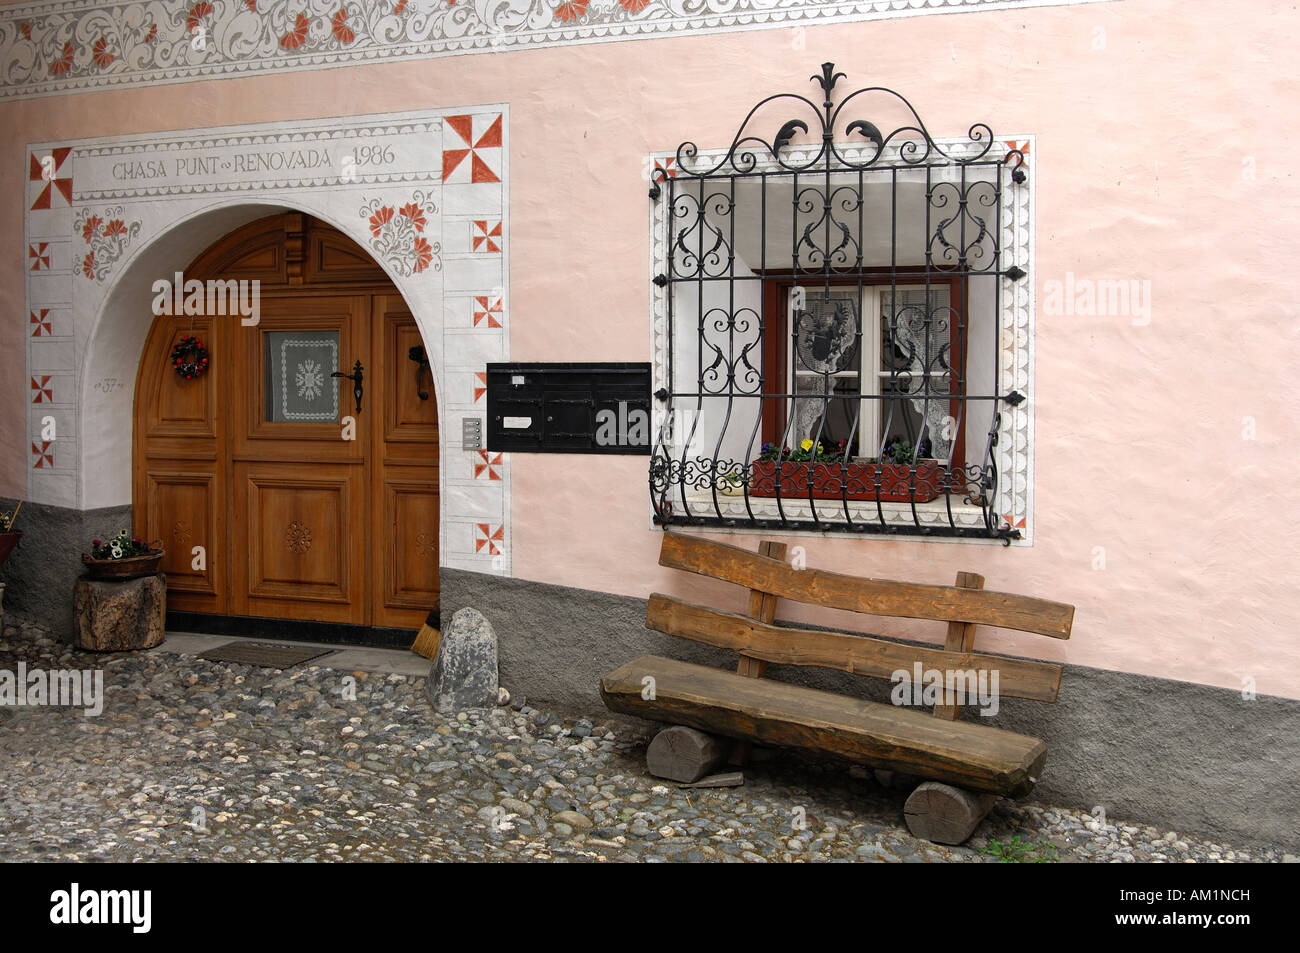 Entrance of an Engadin house decorated with Sgraffito ornaments, Scuol, Schuls, Lower Engadin, Grisons, Switzerland Stock Photo